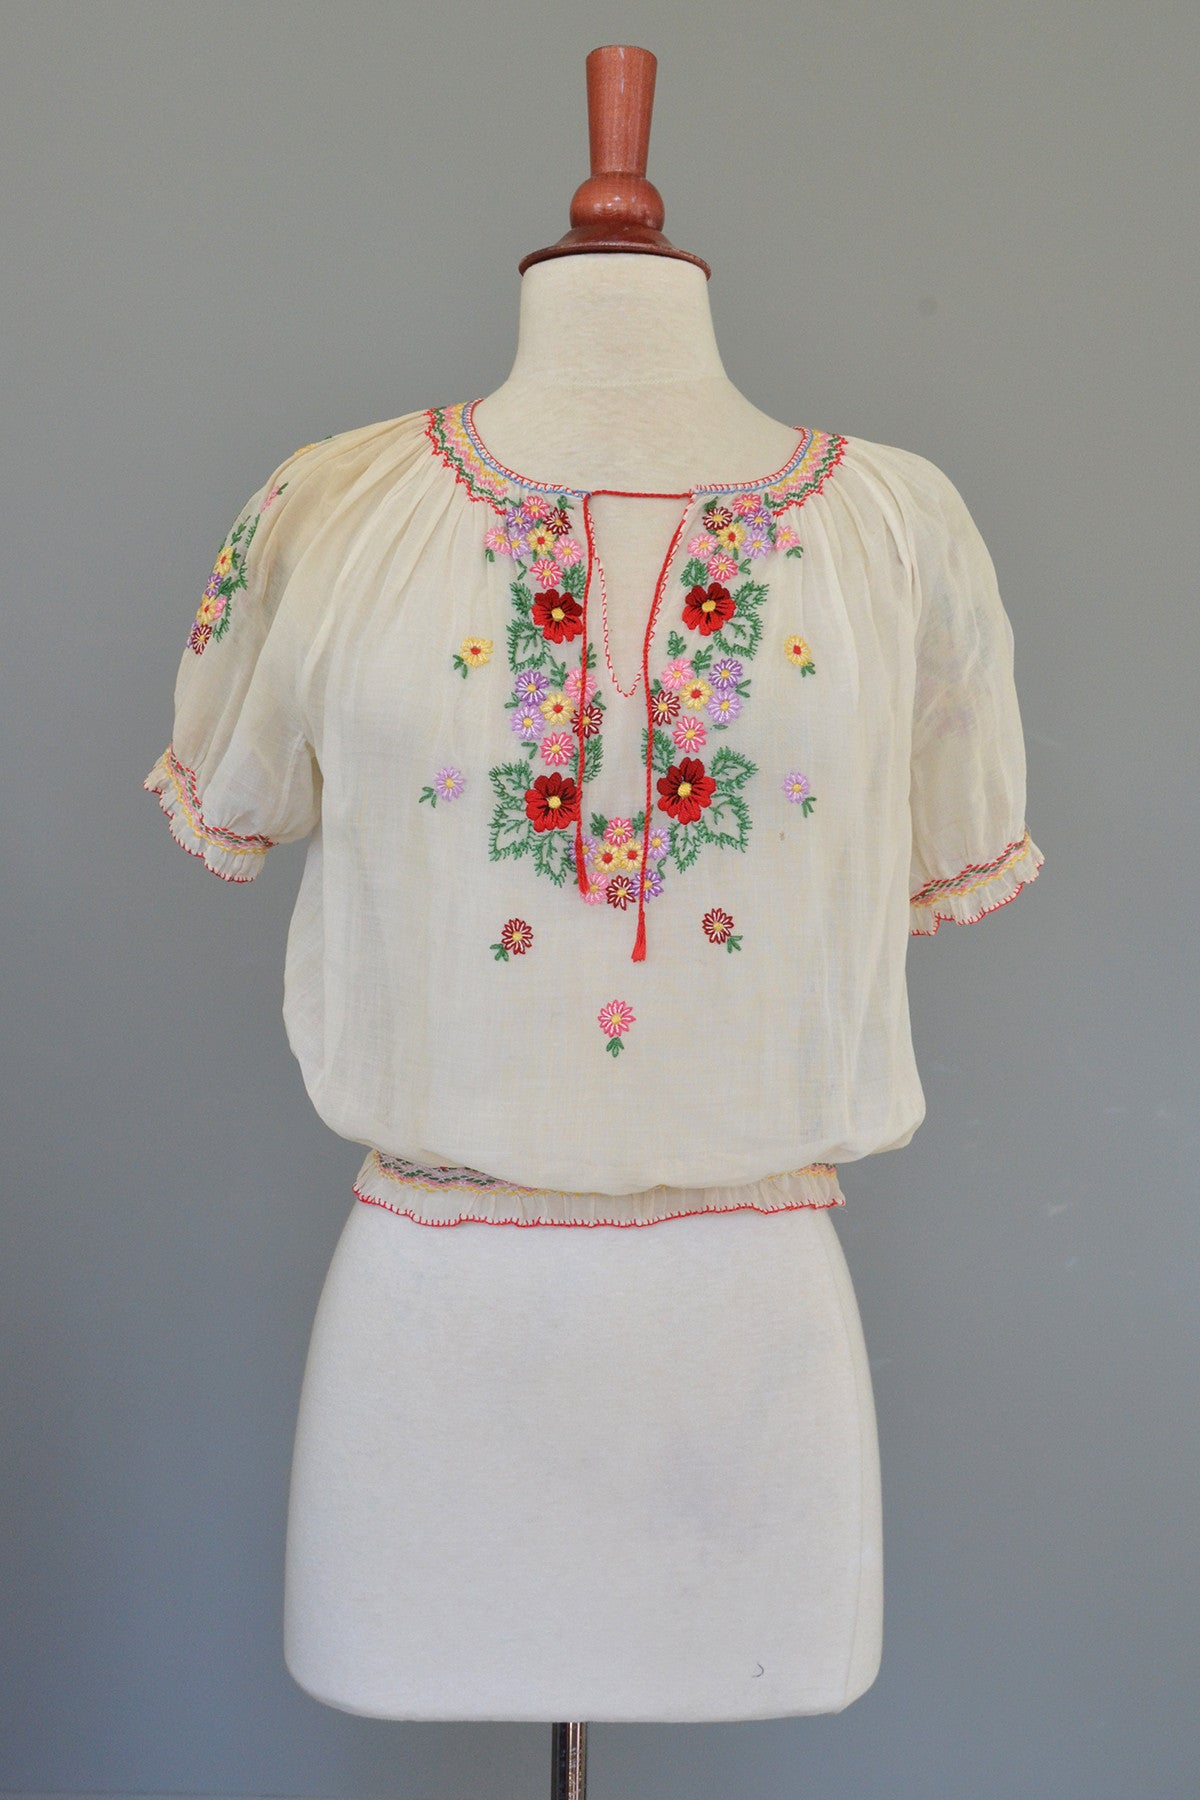 Off White Chiffon Embroidered Spring Flowers Peasant Top